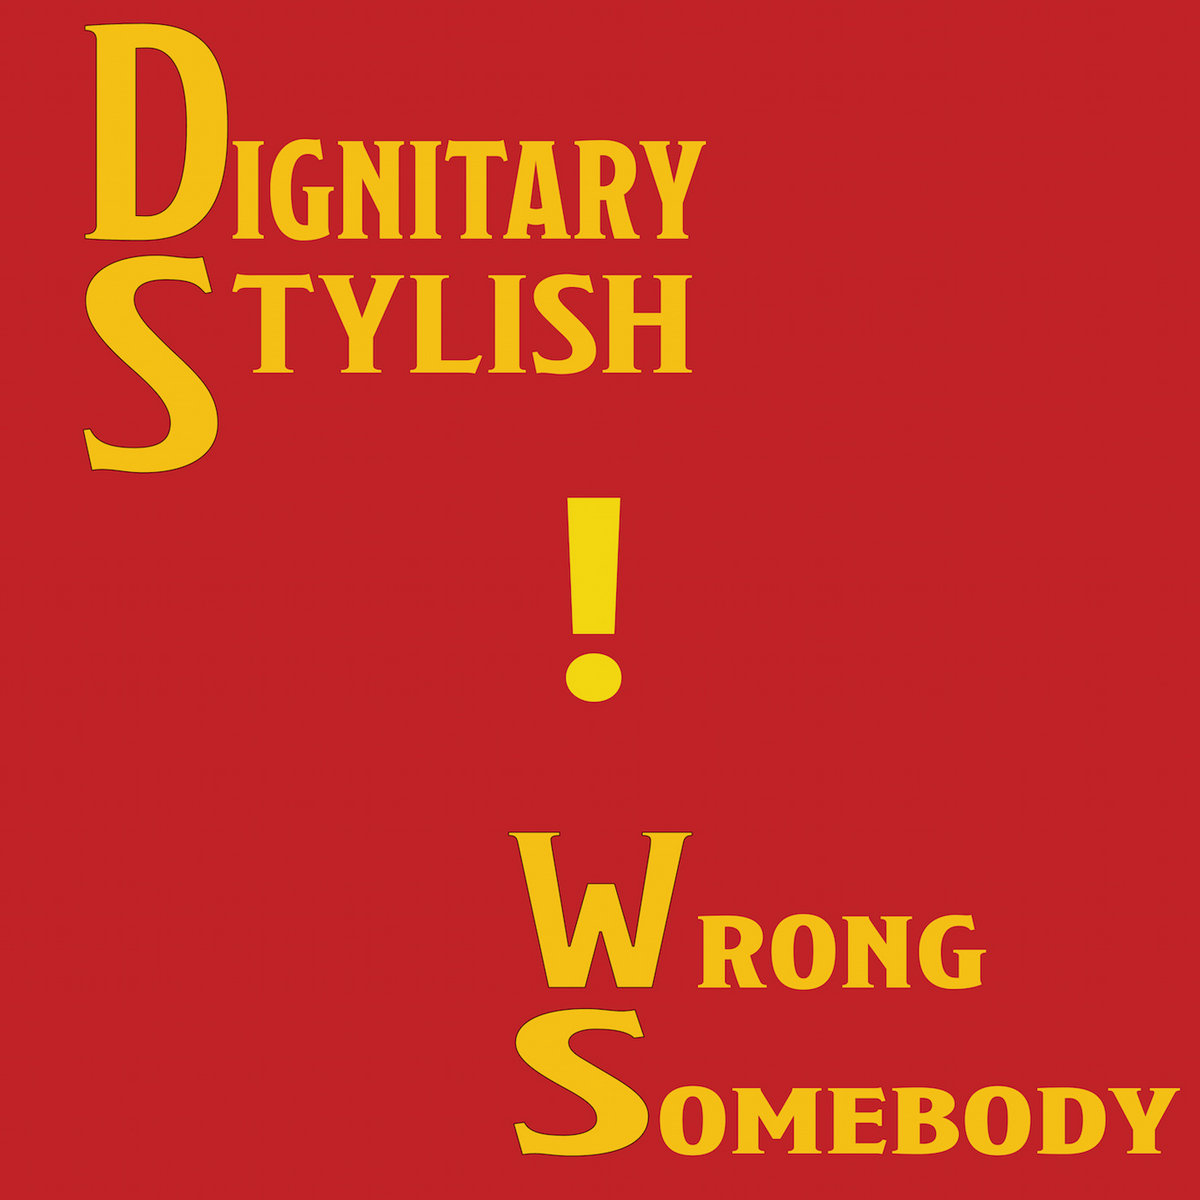 Fashion style Stylish dignitary jah send me come lp for lady